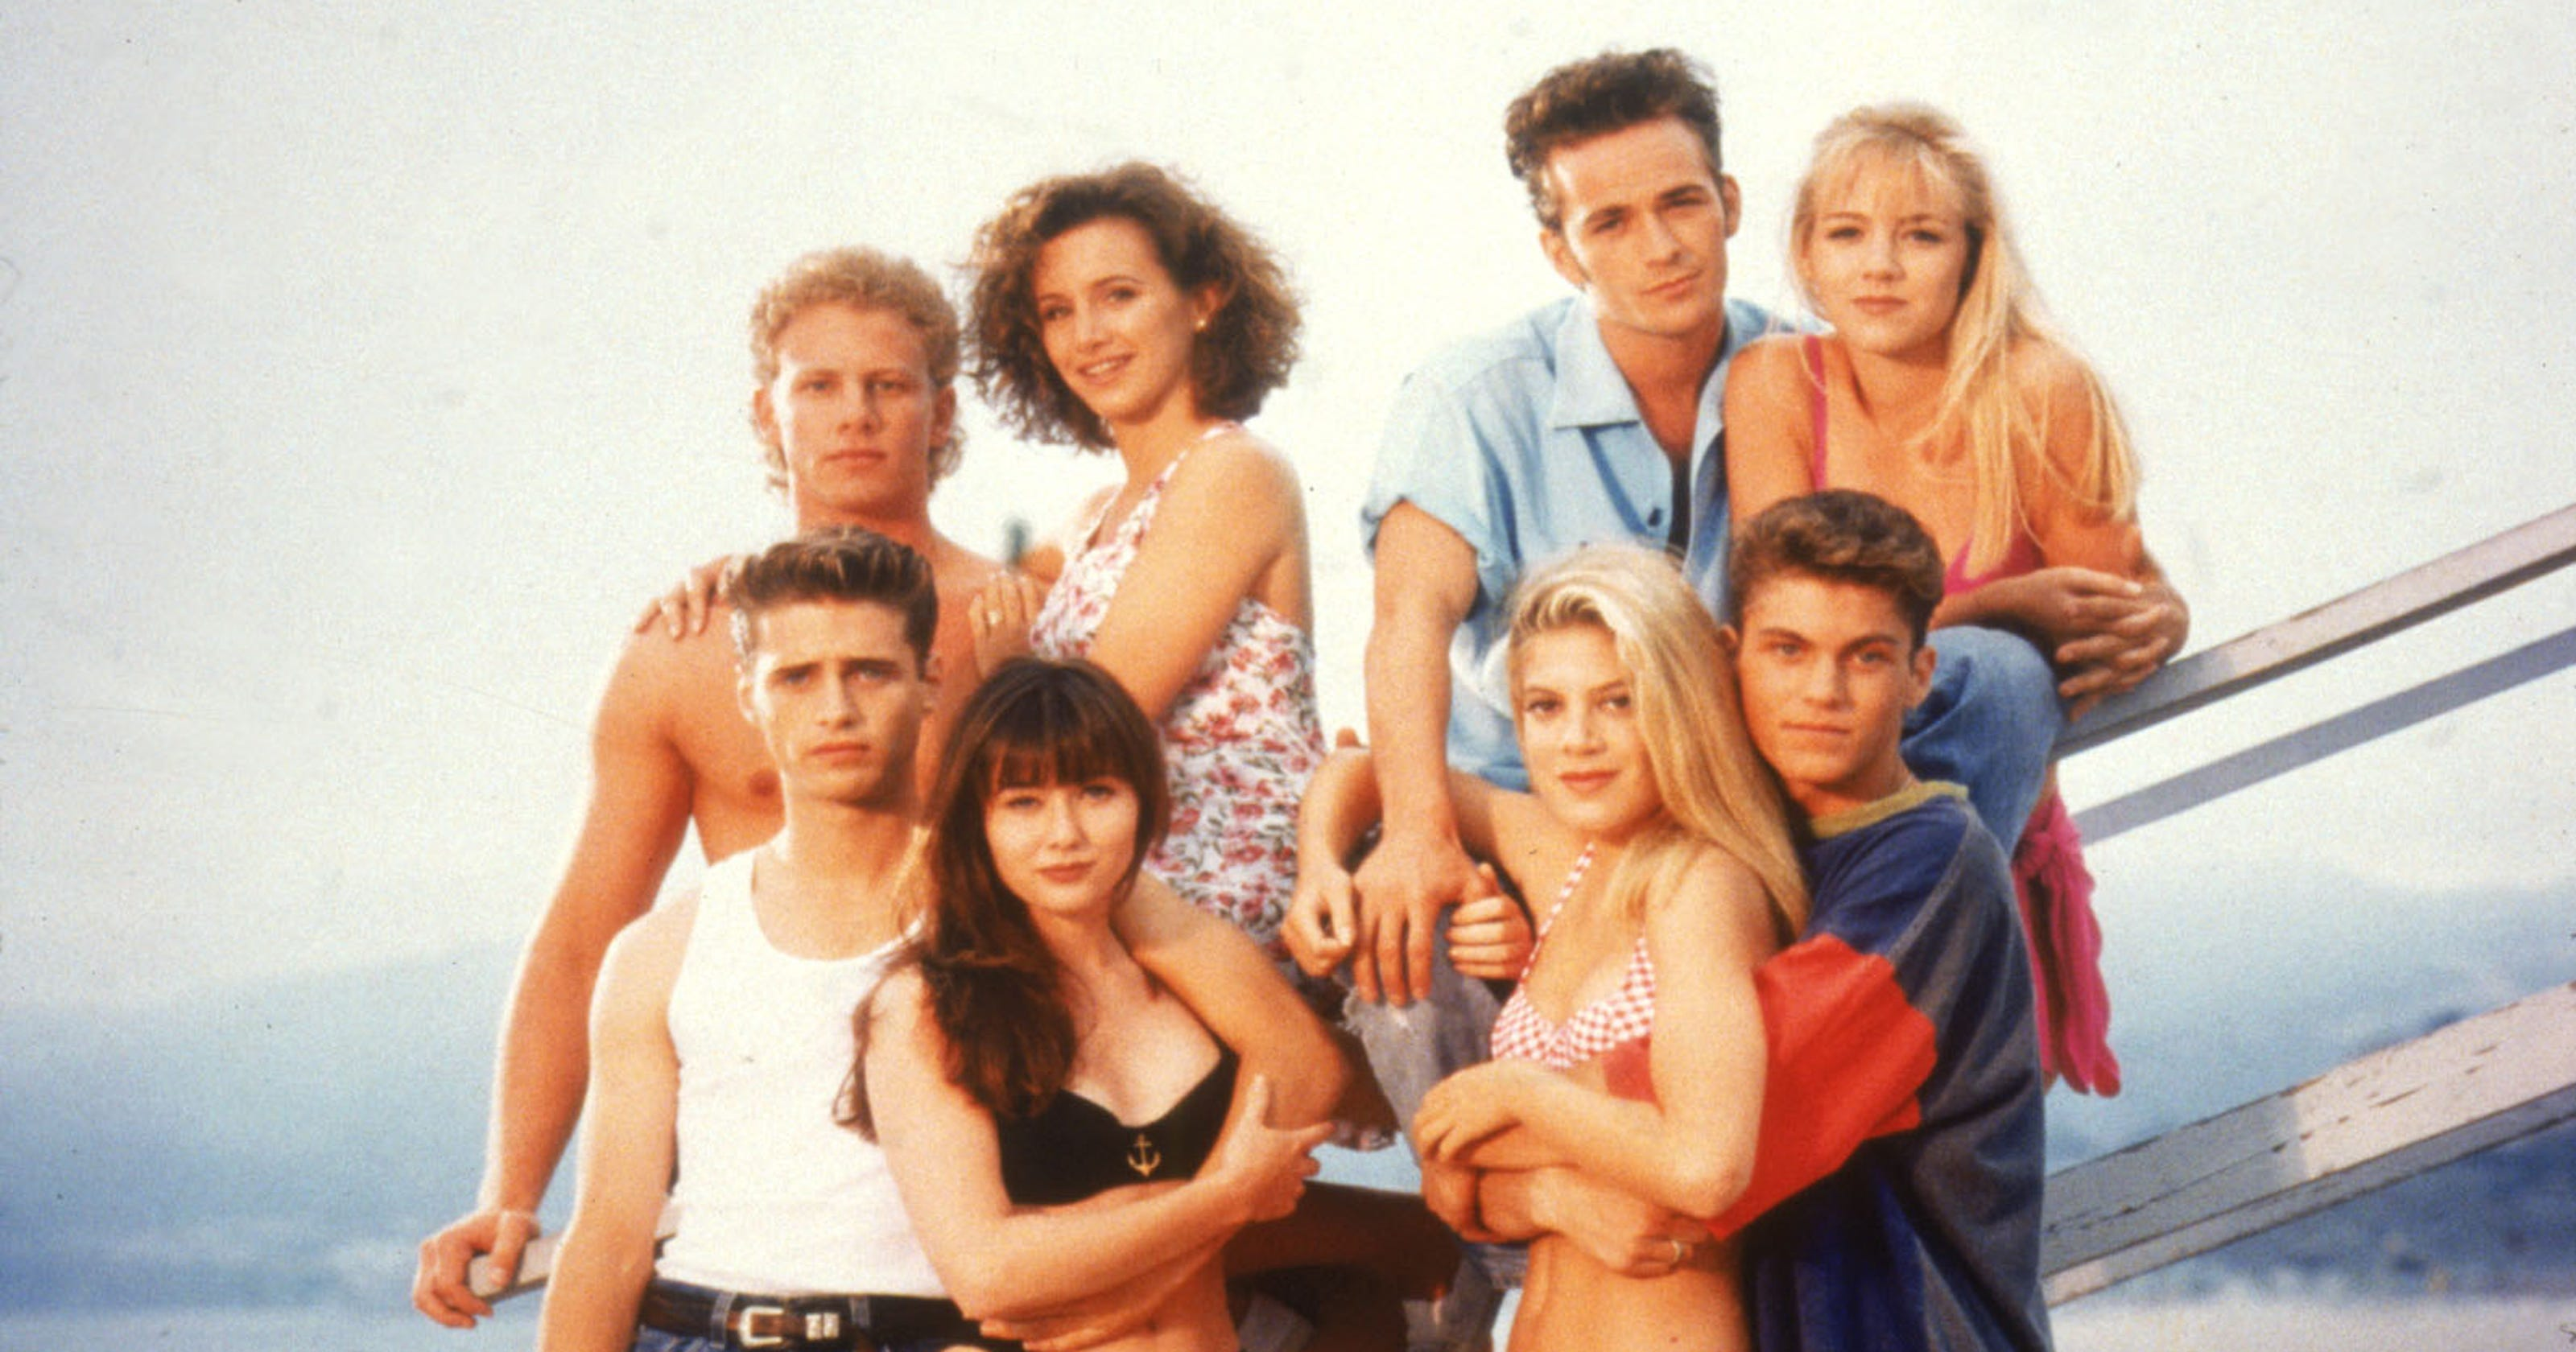 The 'Beverly Hills 90210' cast: Where are they now?